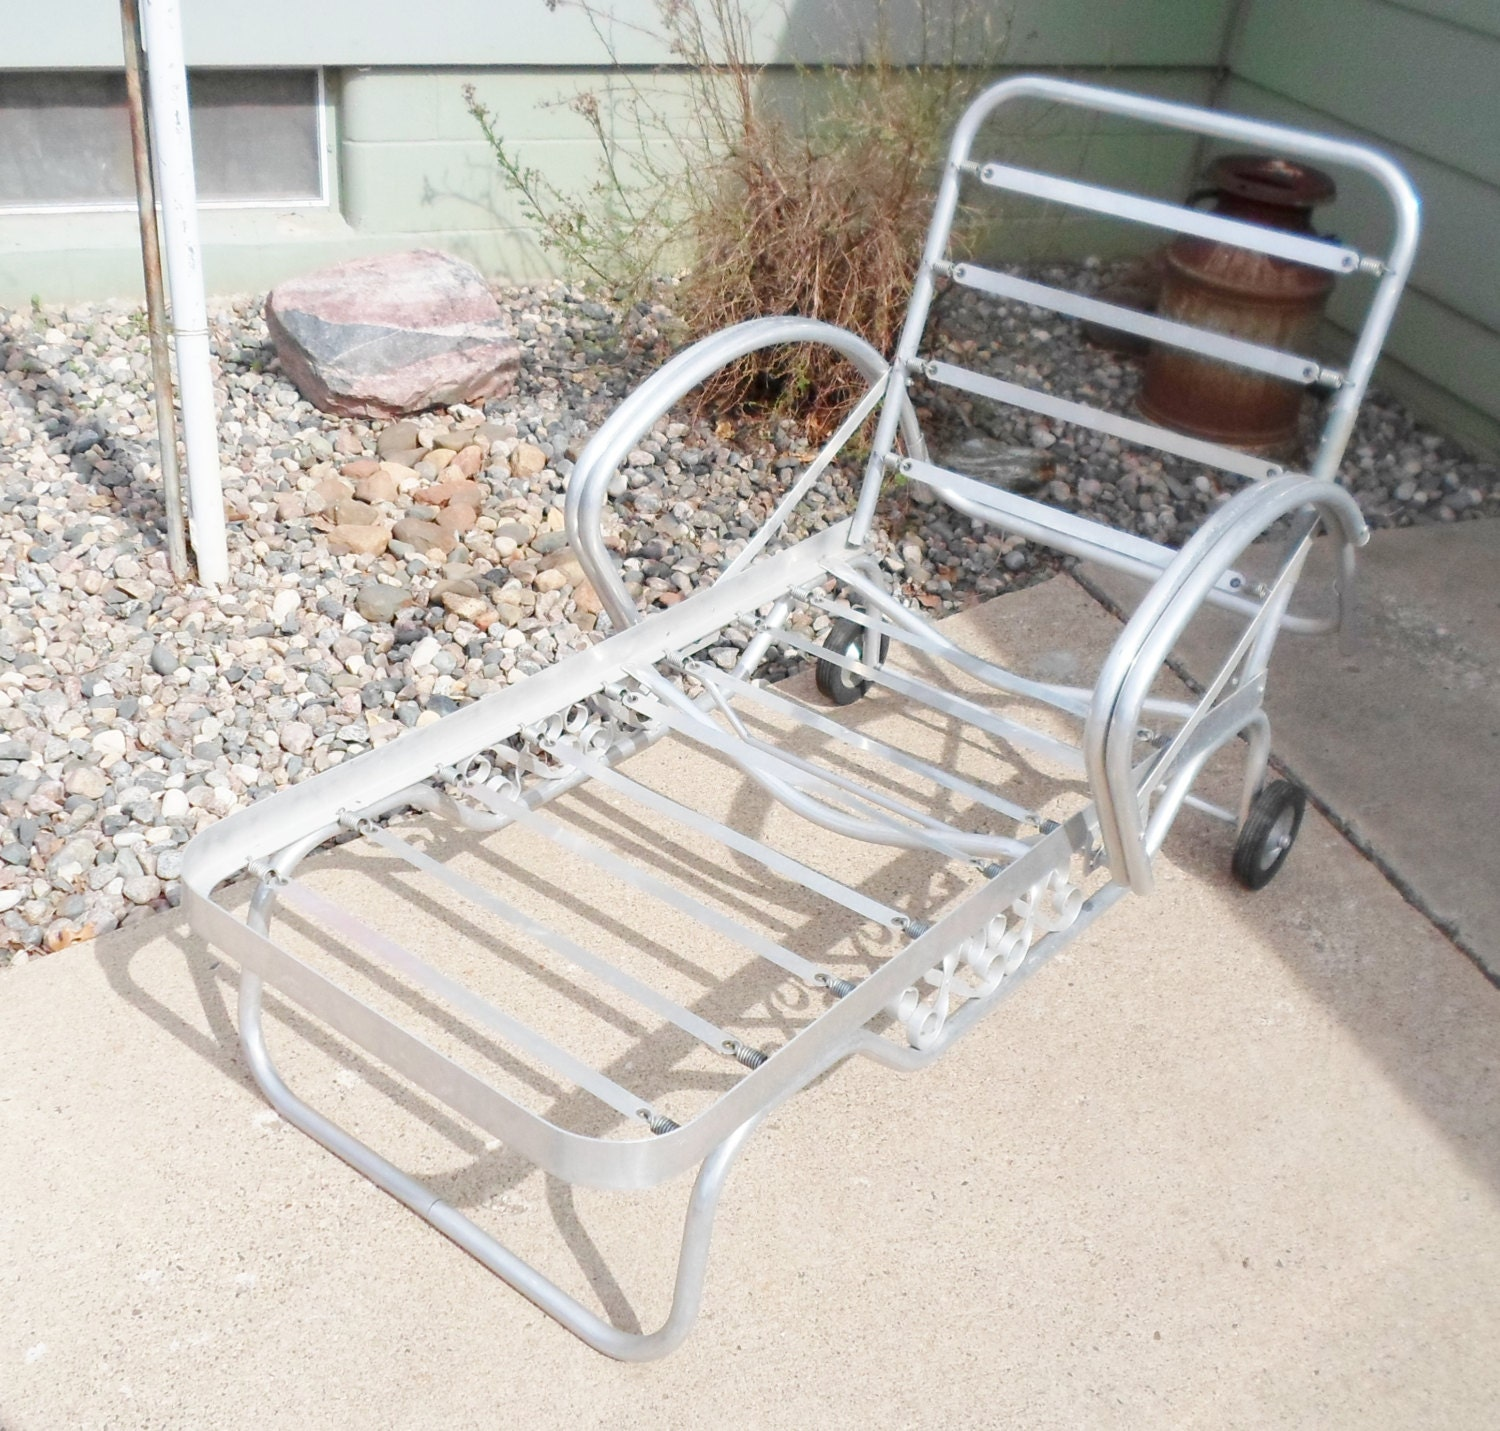 Mid Century Outdoor Furniture: Vintage Mid Century Chaise Lounge Chair For The Patio Garden